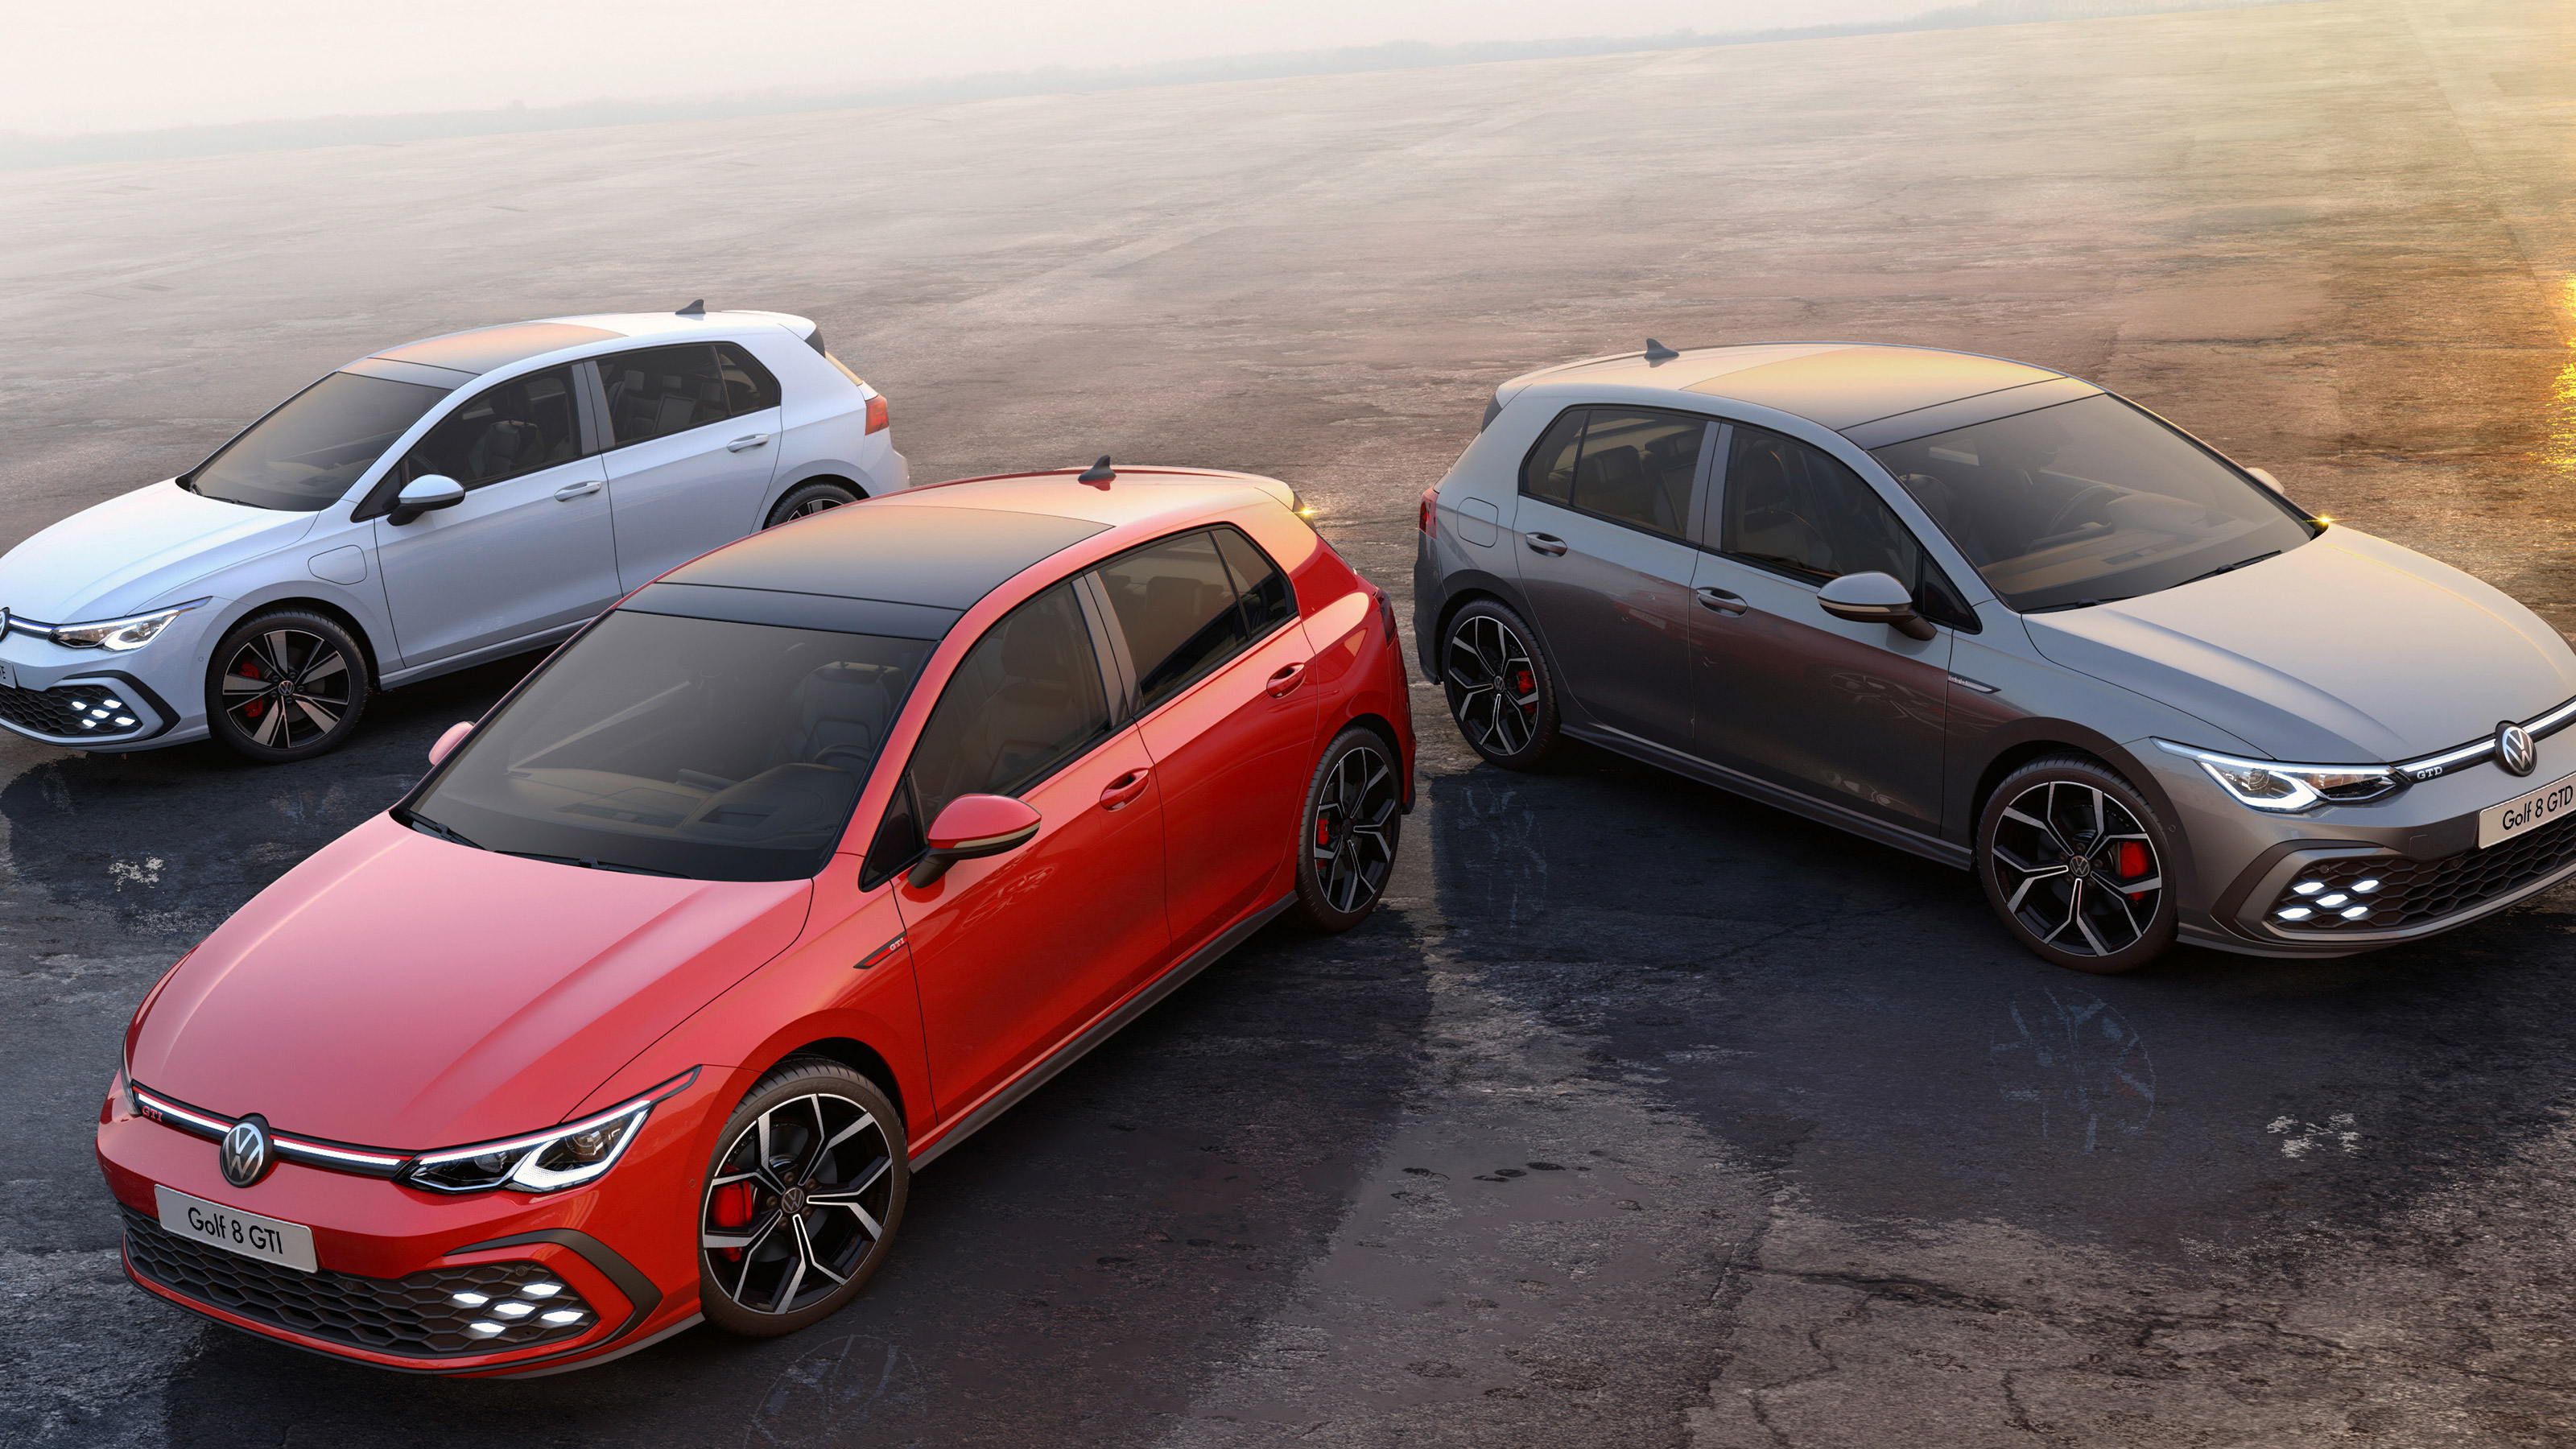 New 2020 Volkswagen Golf Gti Tech Insights Revealed Plus Details On The Gte And Gtd Evo